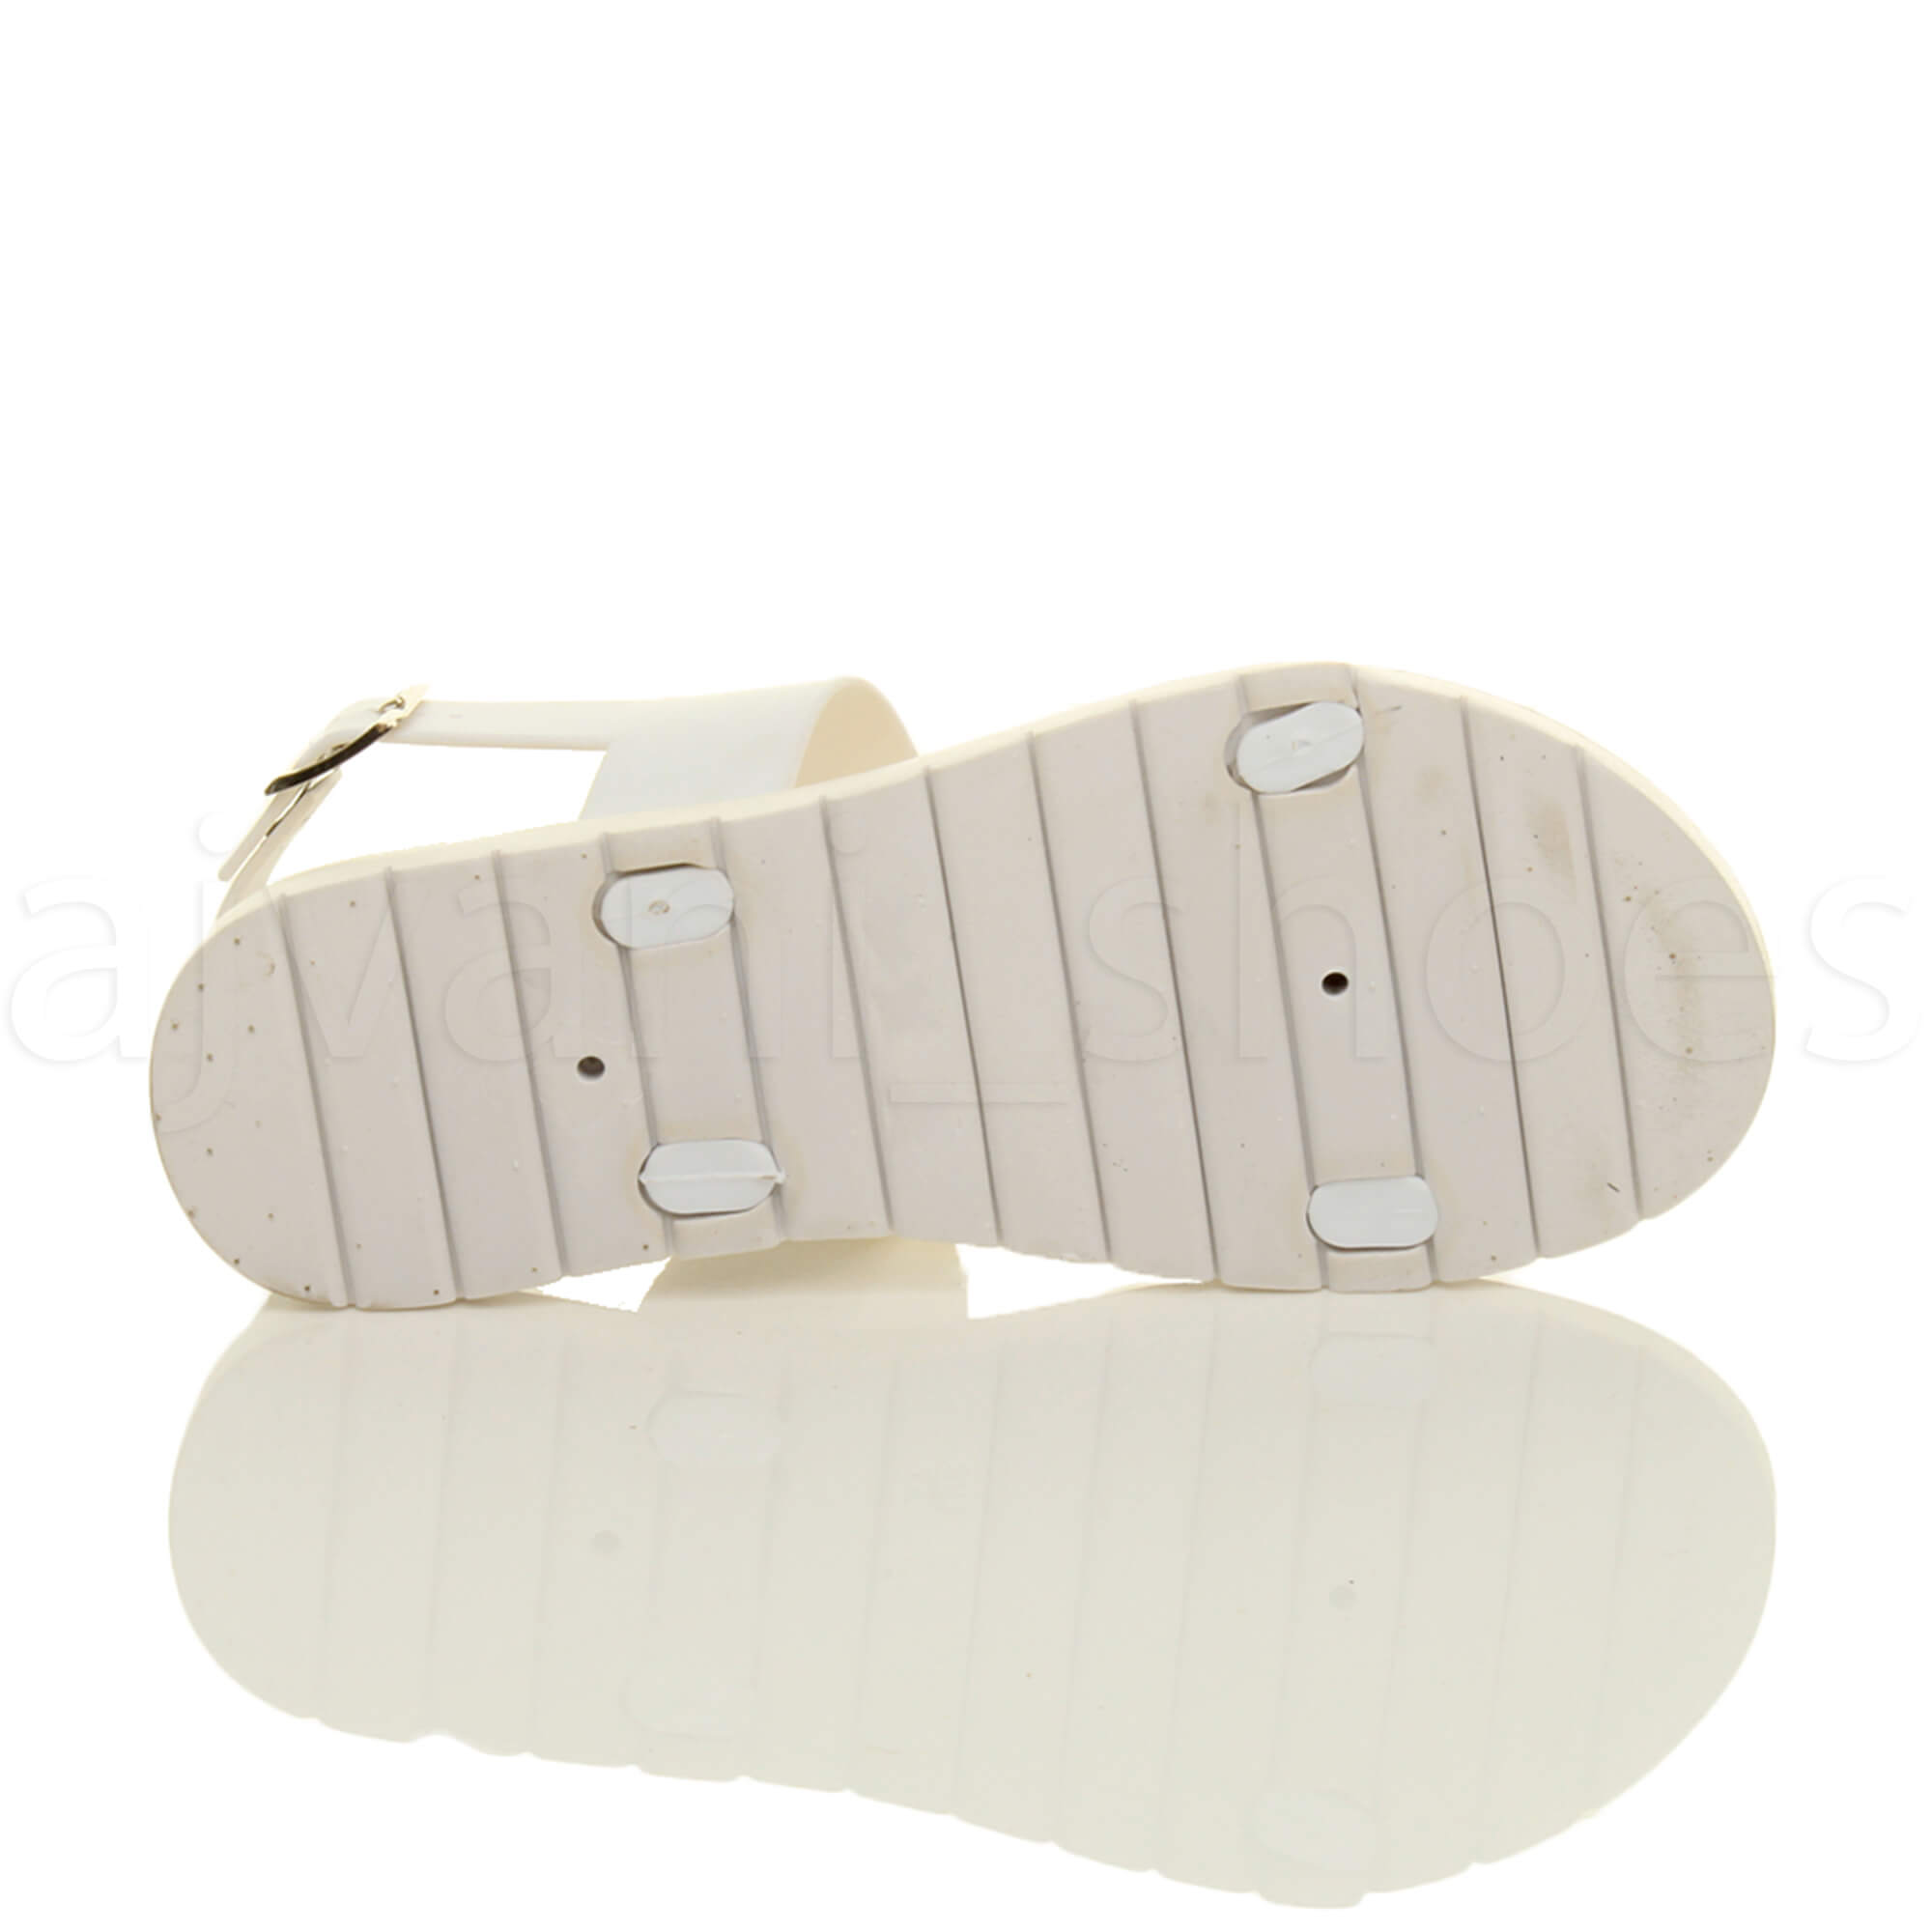 WOMENS-LADIES-FLAT-STRAPPY-BUCKLE-SLINGBACK-CLEATED-RUBBER-SUMMER-SANDALS-SIZE thumbnail 15